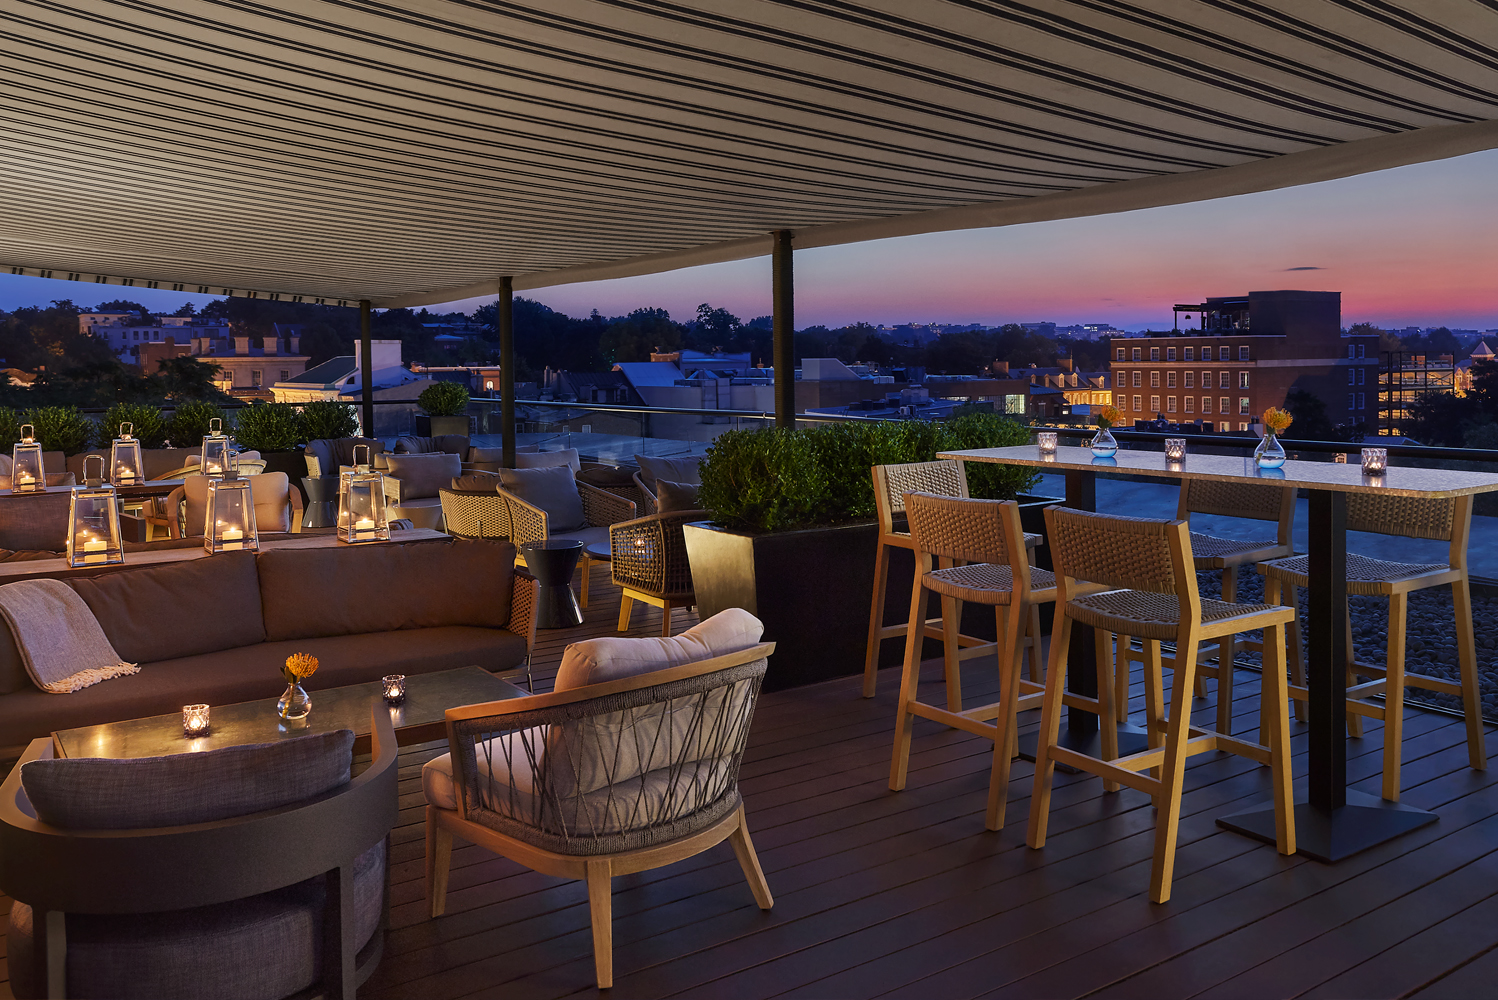 Set against the capital city's skyline, the hotel's new rooftop bar and lounge, CUT Above, offers al fresco entertaining. The open-air space is outfitted with modern lounge furniture.